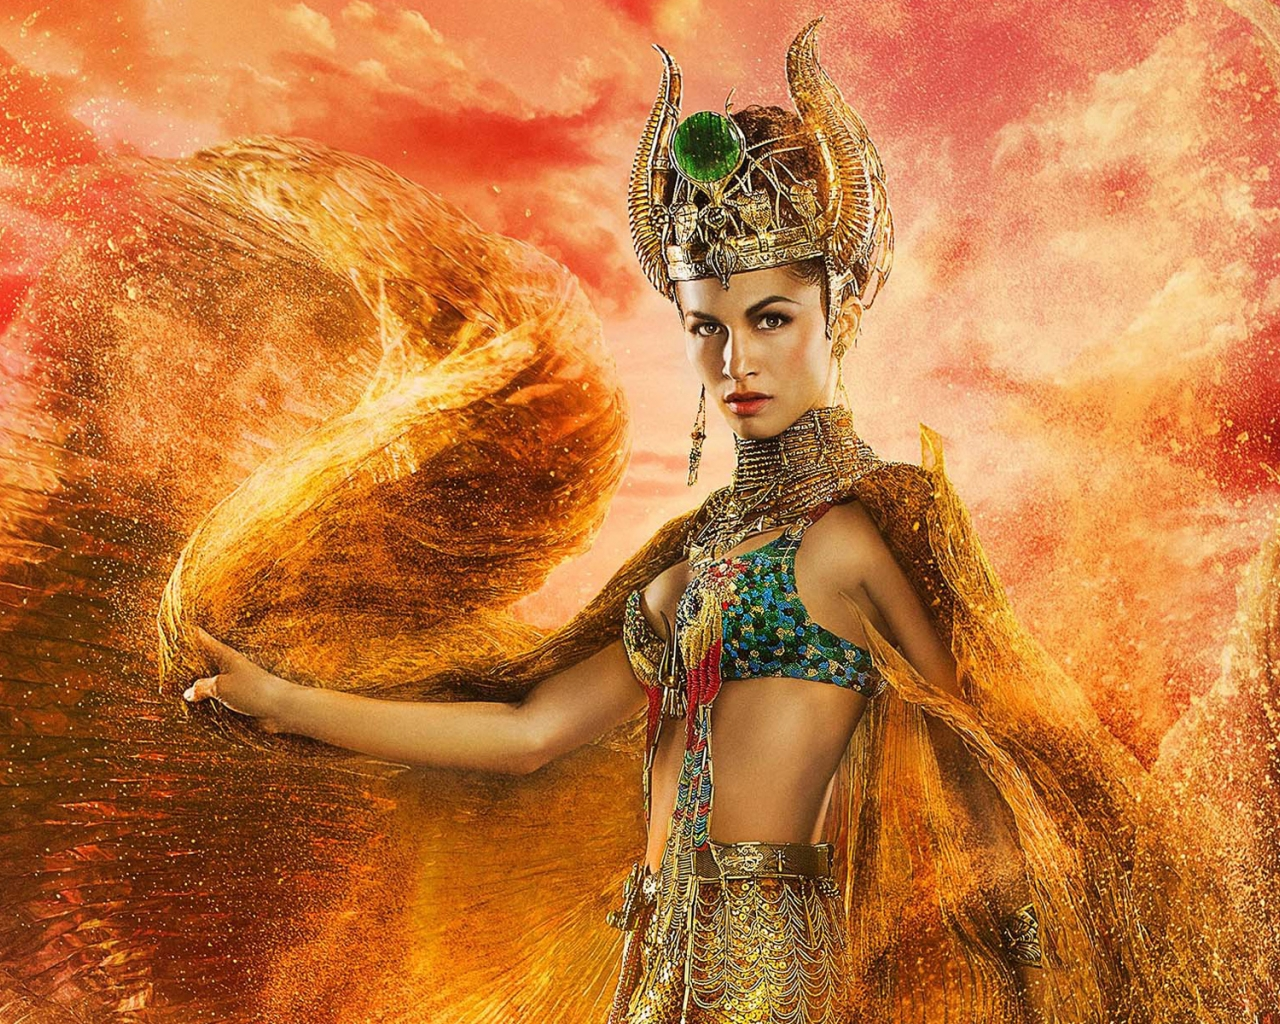 Gods of Egypt Wallpapers   HD Wallpapers Backgrounds of Your Choice 1280x1024